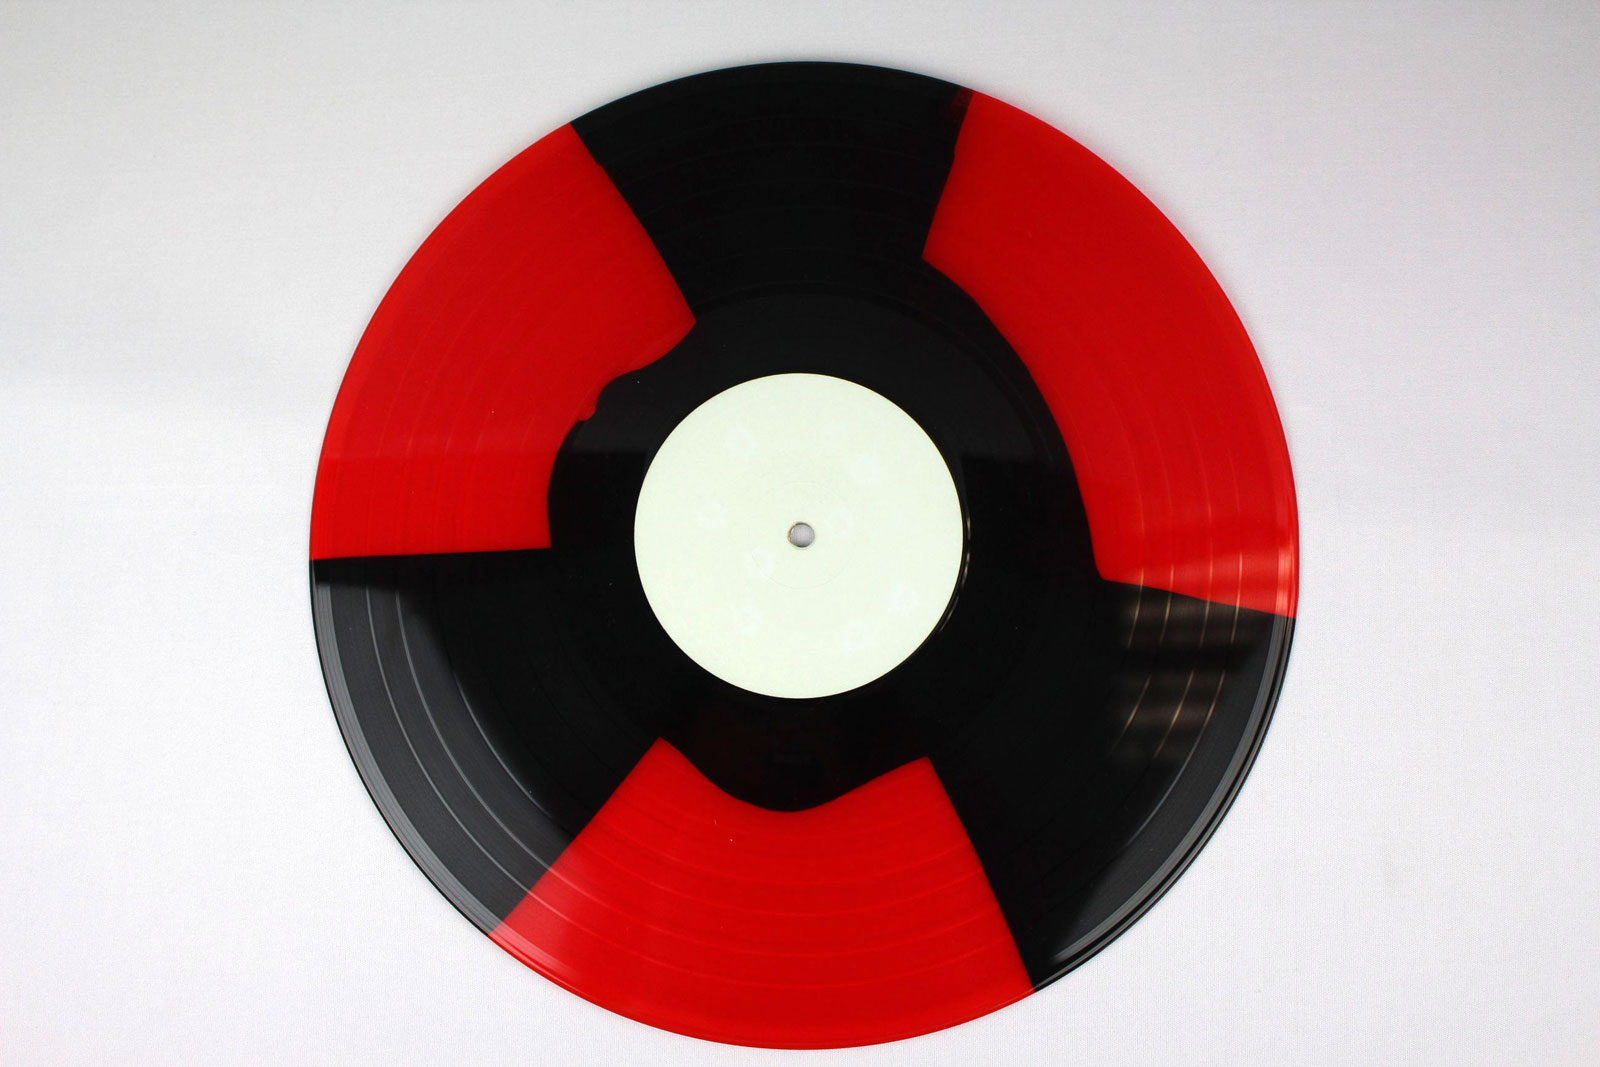 red transparent / coloured circle and dab: black